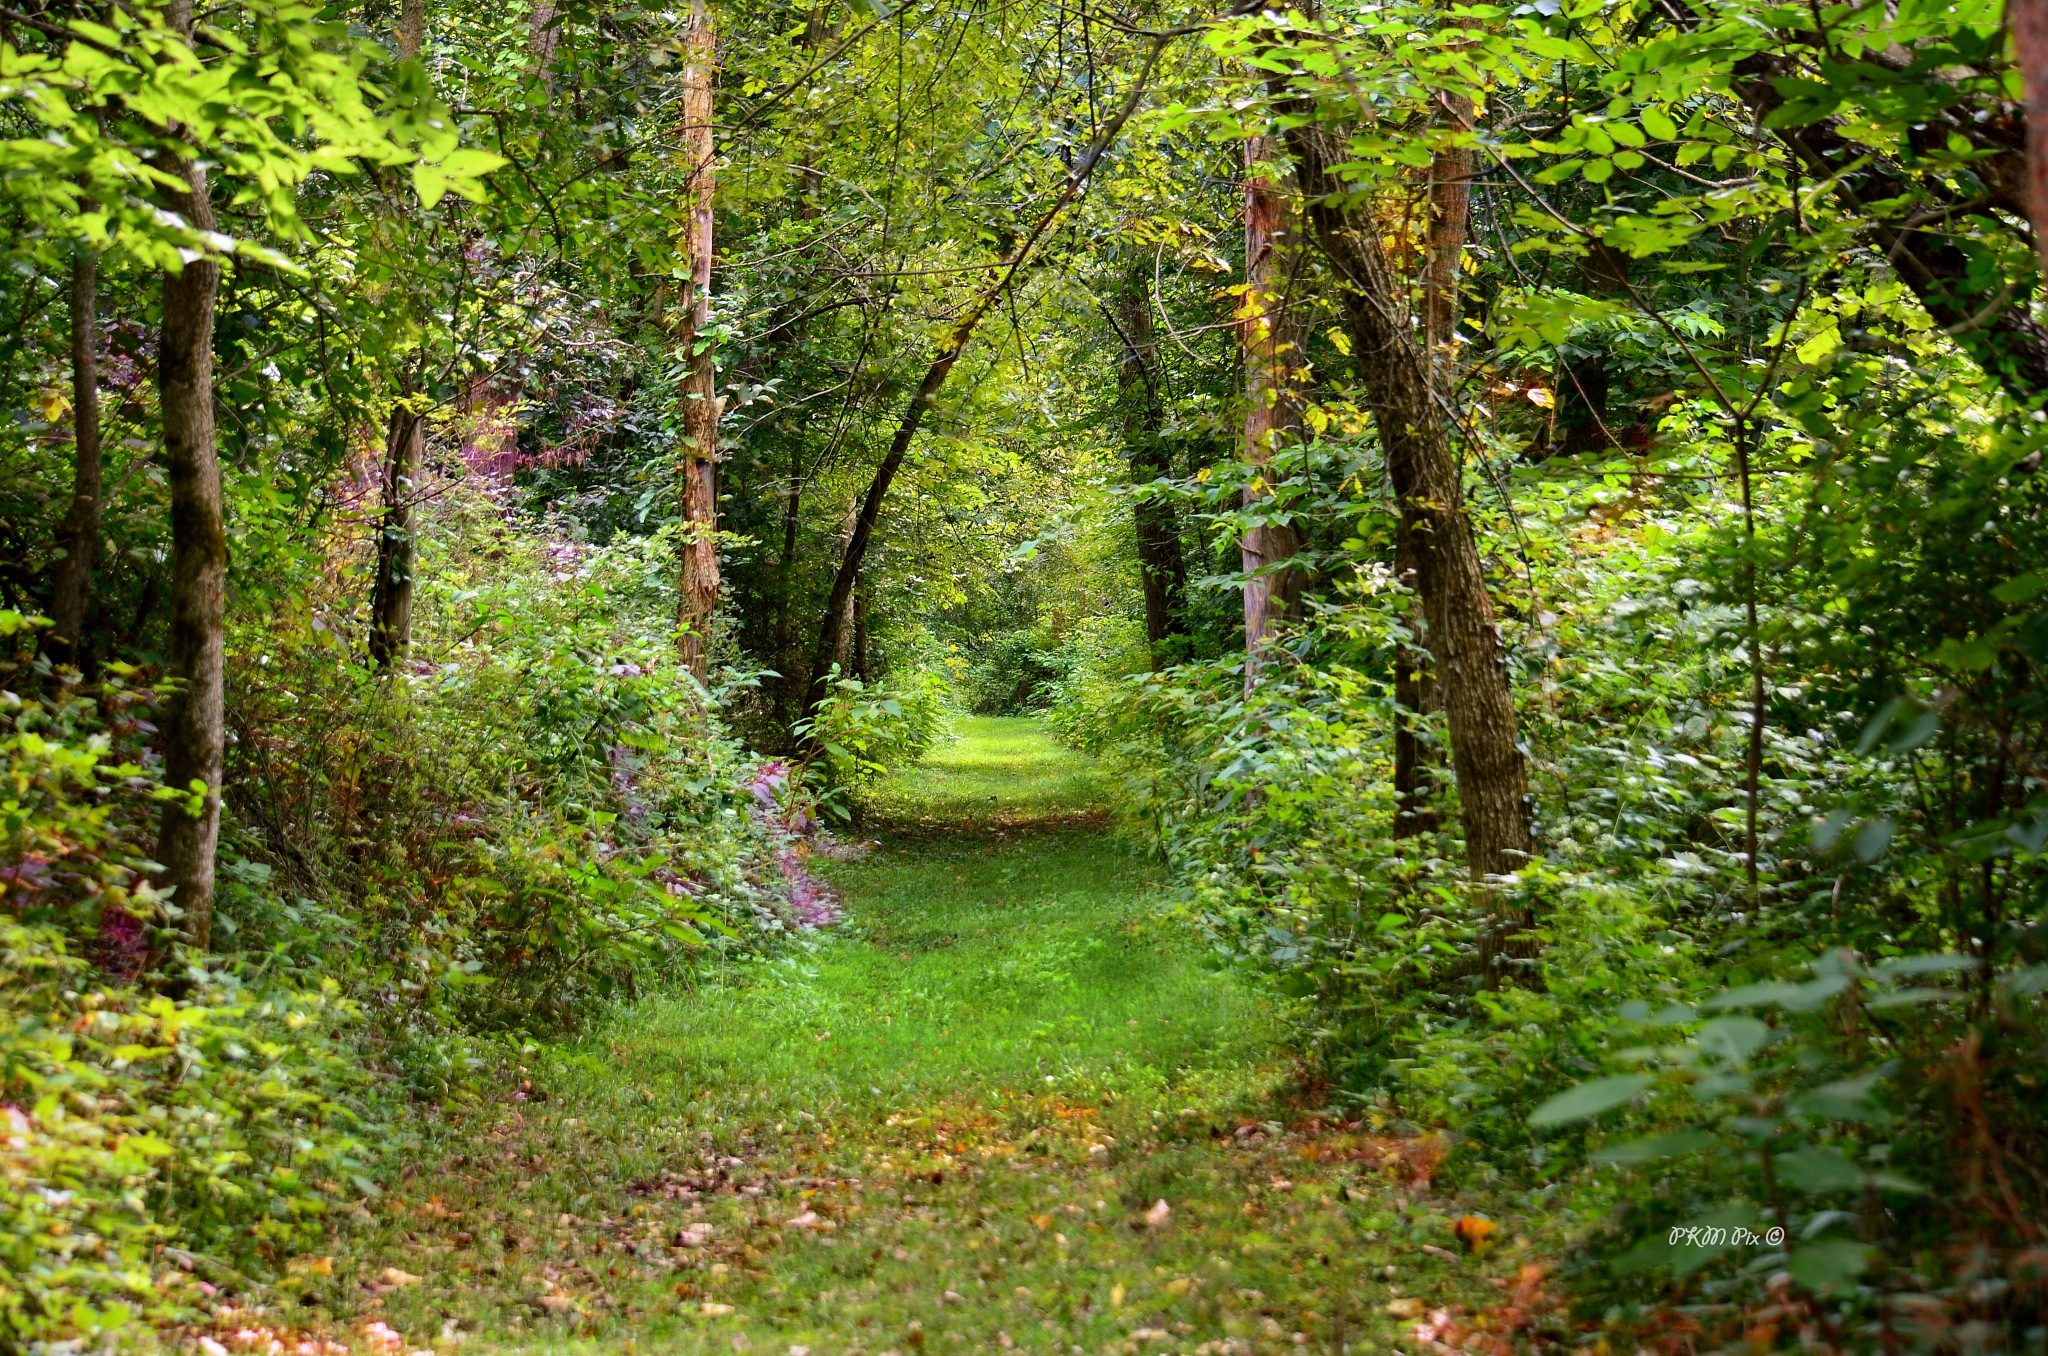 Peaceful Path by pam.satterfieldmanning